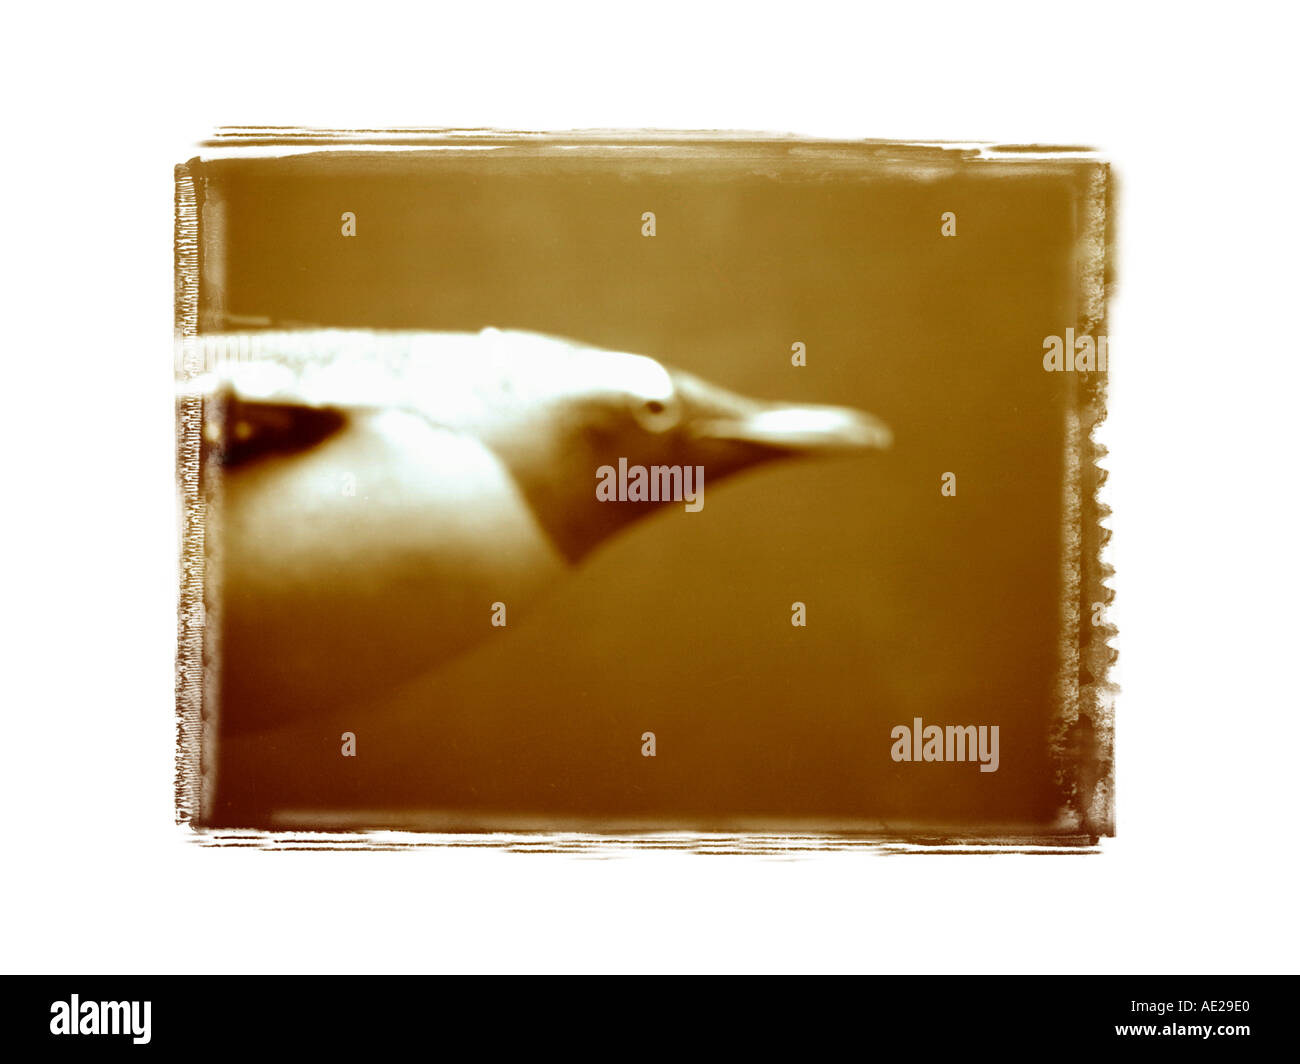 blurring penguin swimming under water  sepia toneed - Stock Image